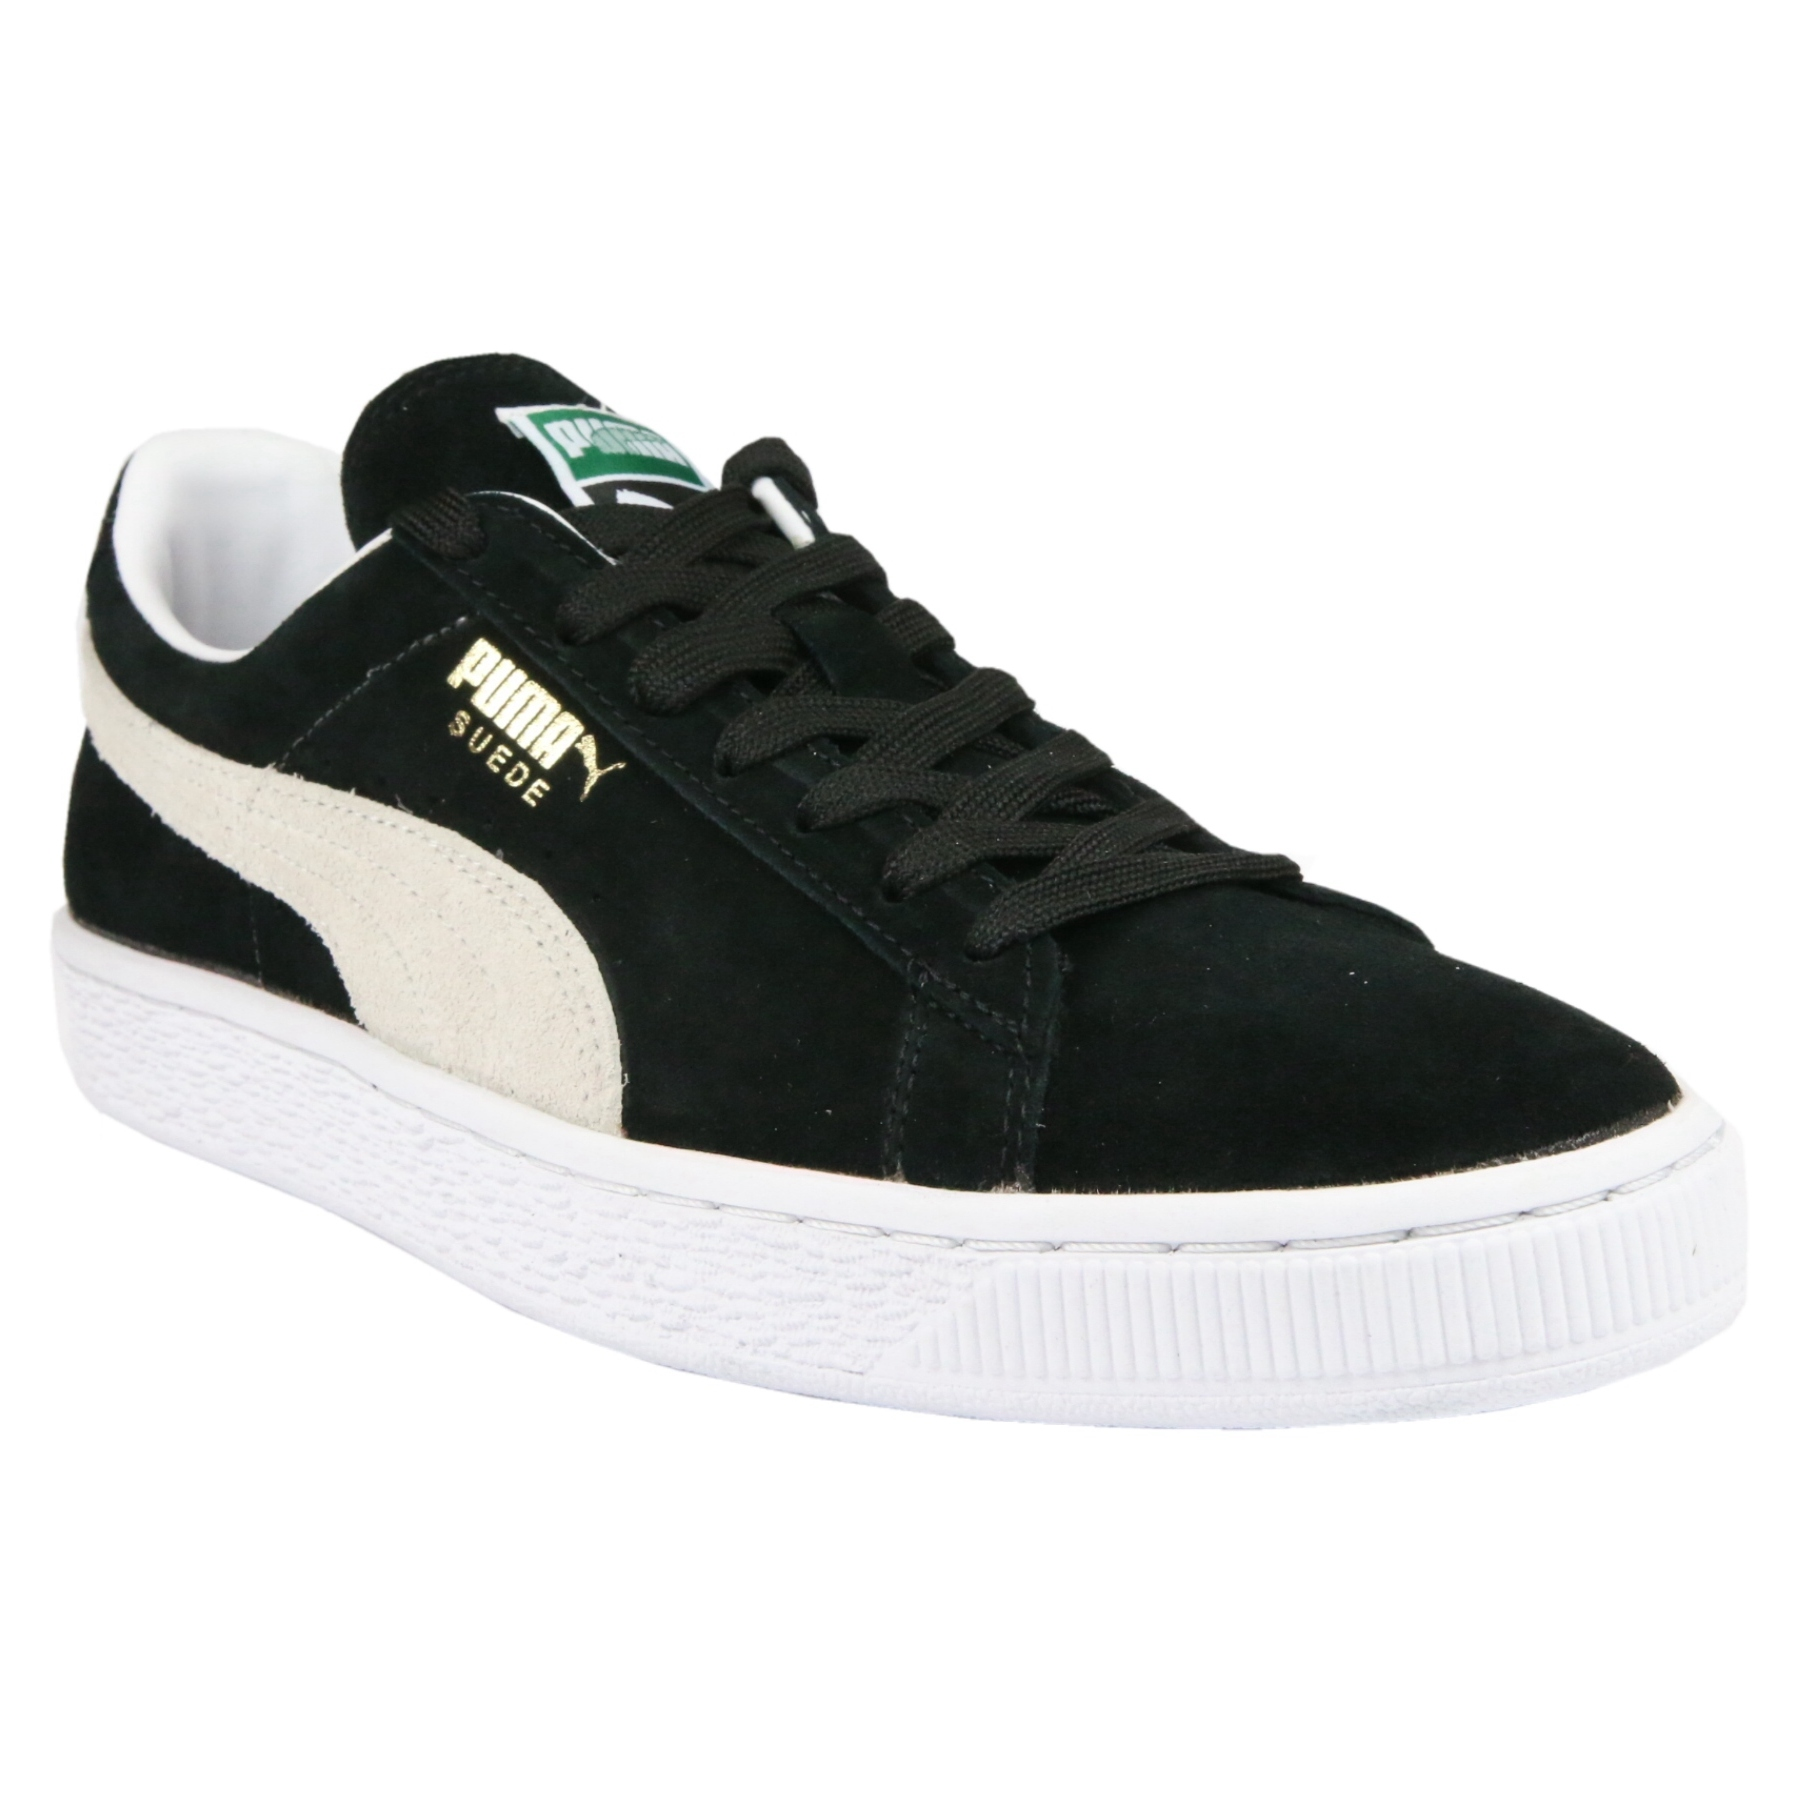 puma suede classic schuhe turnschuhe sneaker wildleder. Black Bedroom Furniture Sets. Home Design Ideas